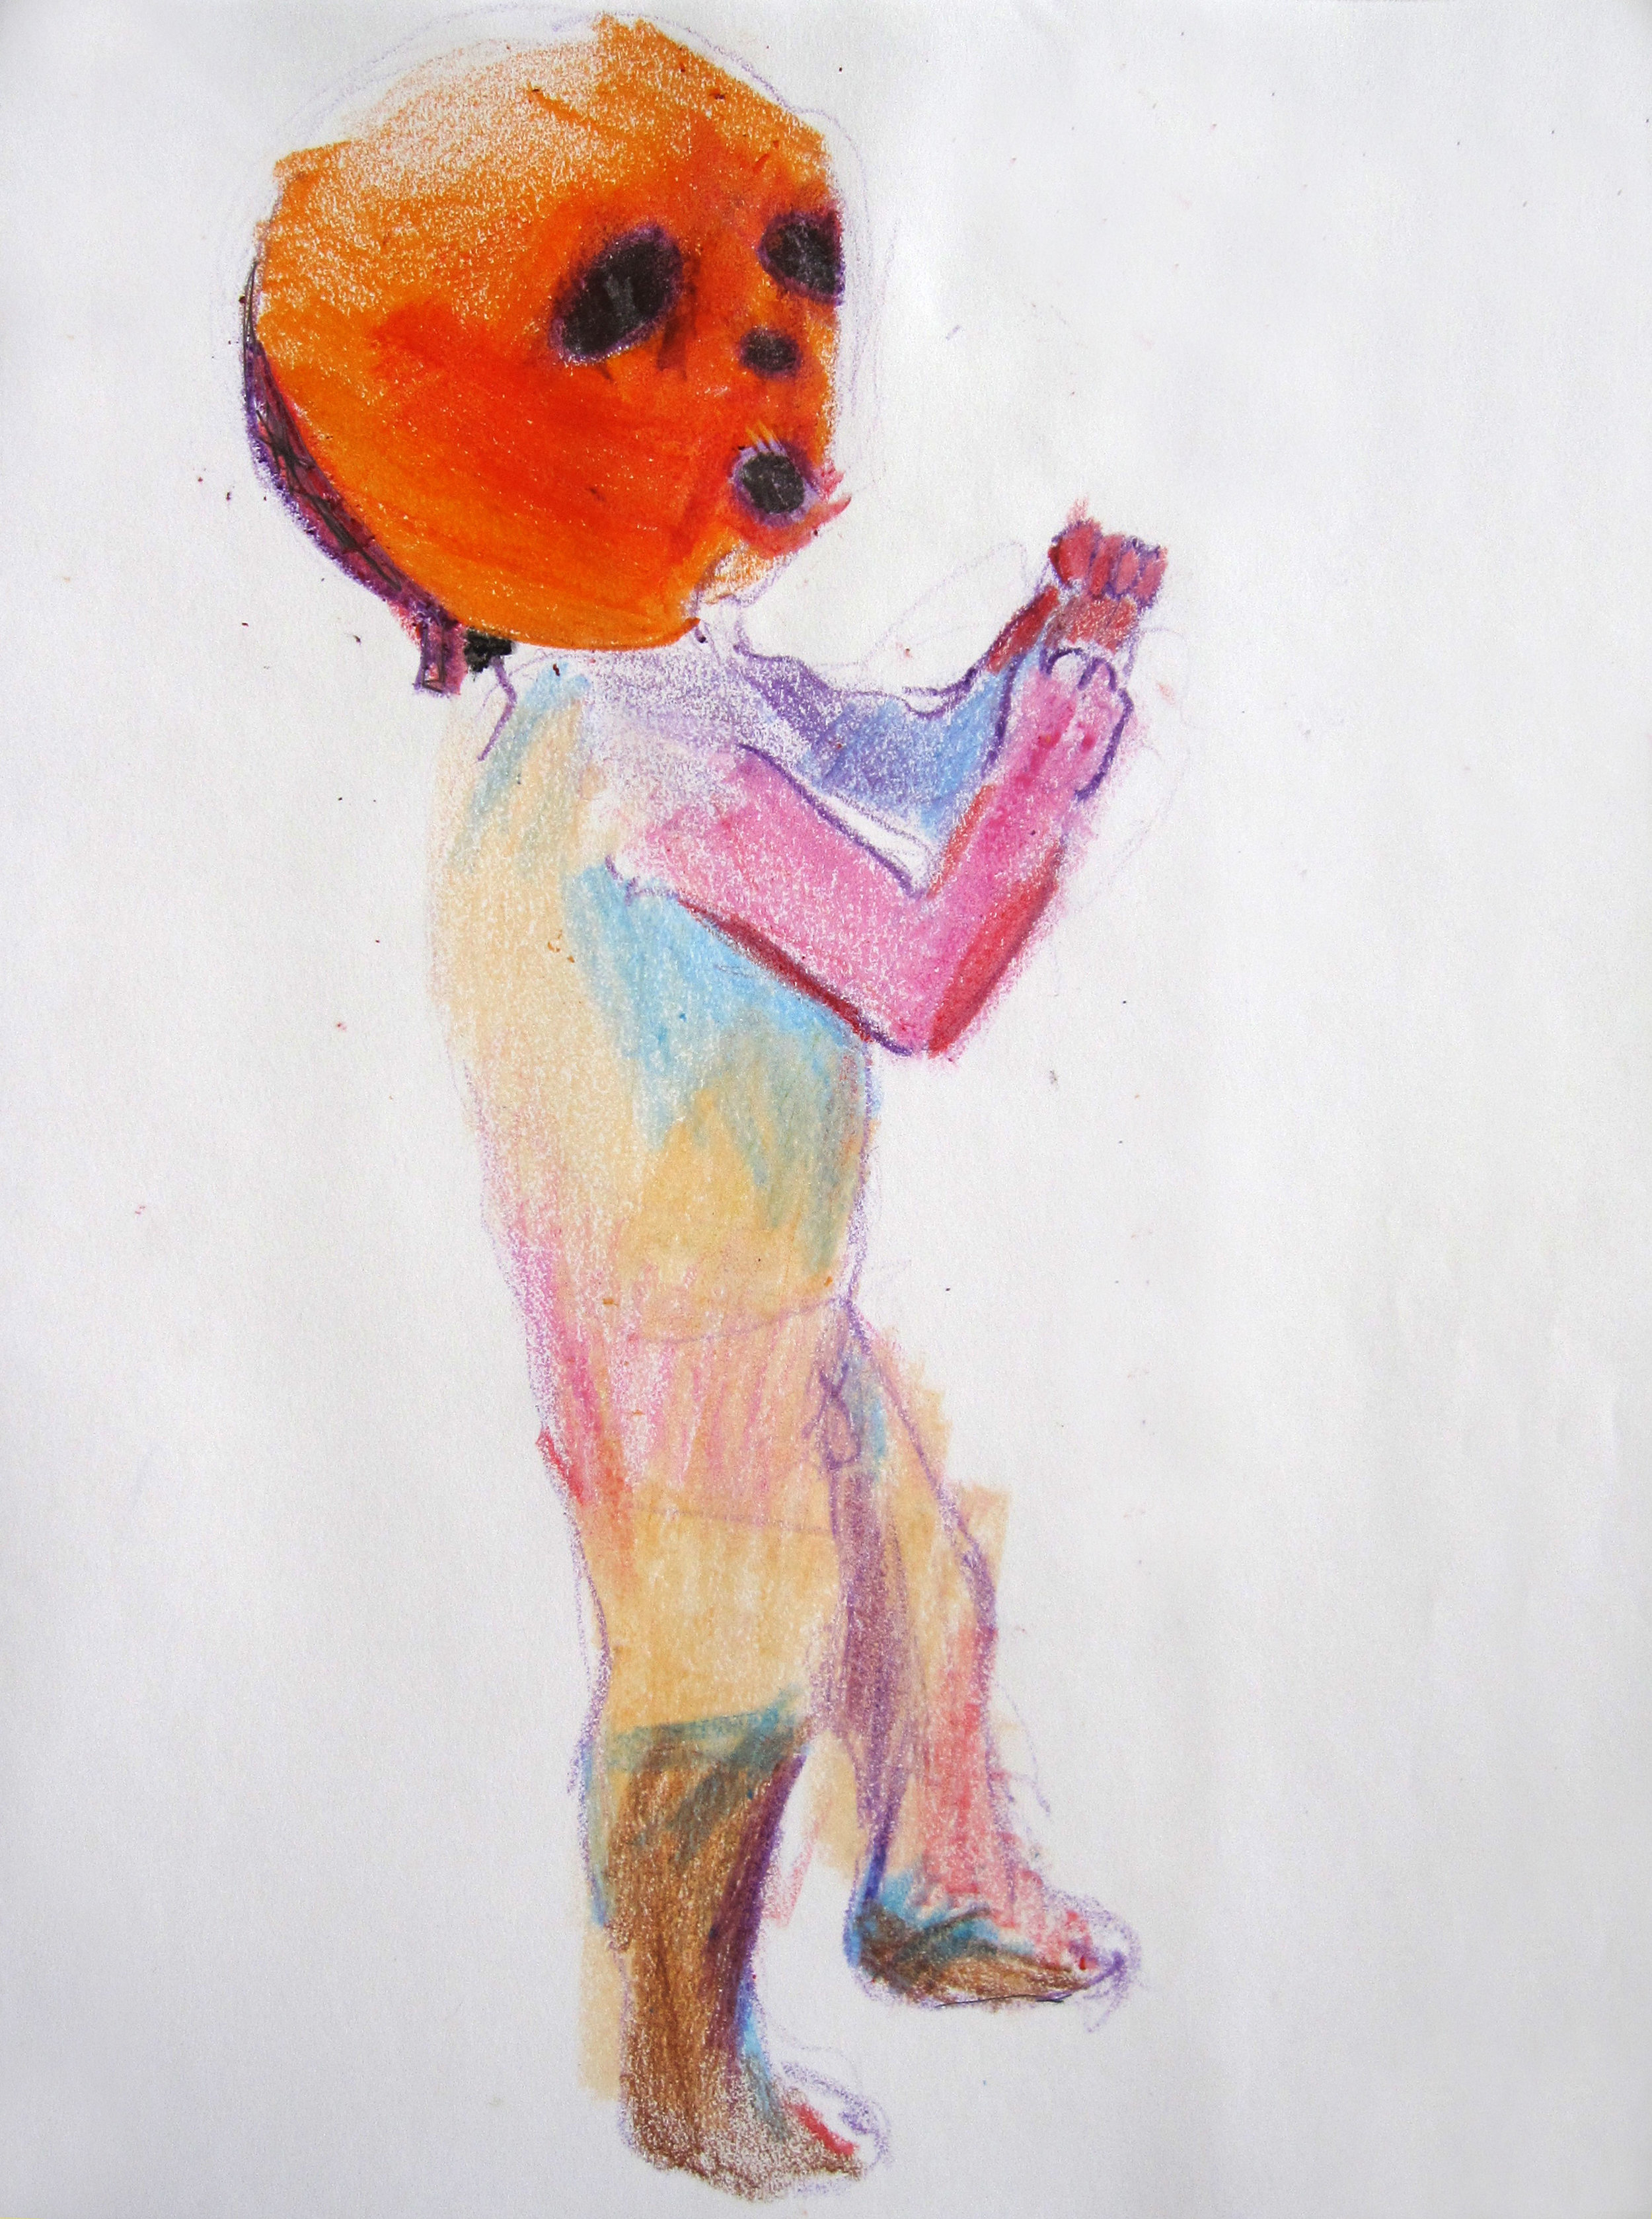 Lucha 4, 2008, Crayon on paper, 14 X11 in.